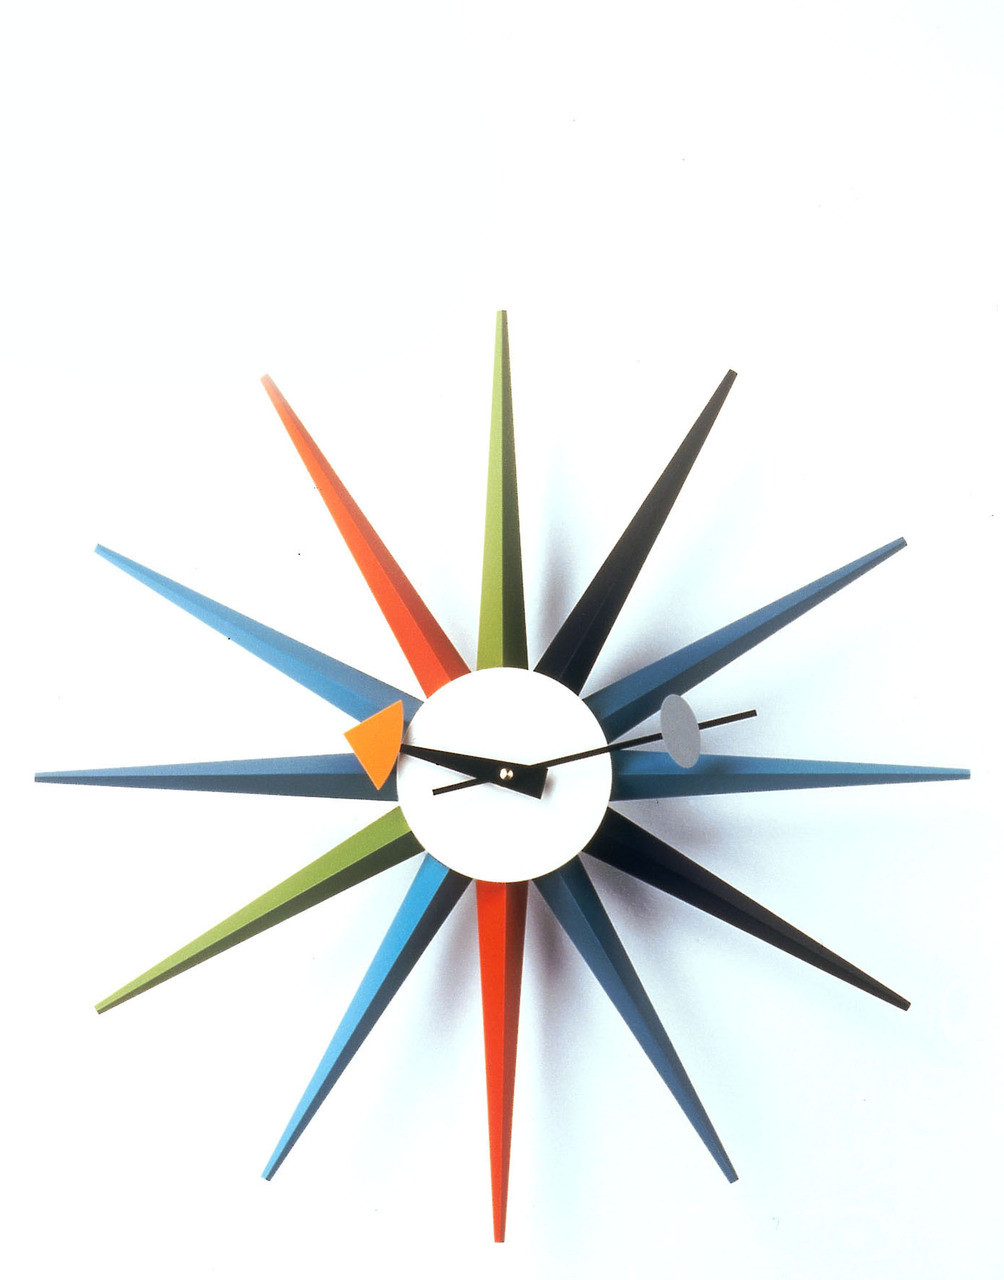 vitra sunburst wall clock by george nelson. Black Bedroom Furniture Sets. Home Design Ideas